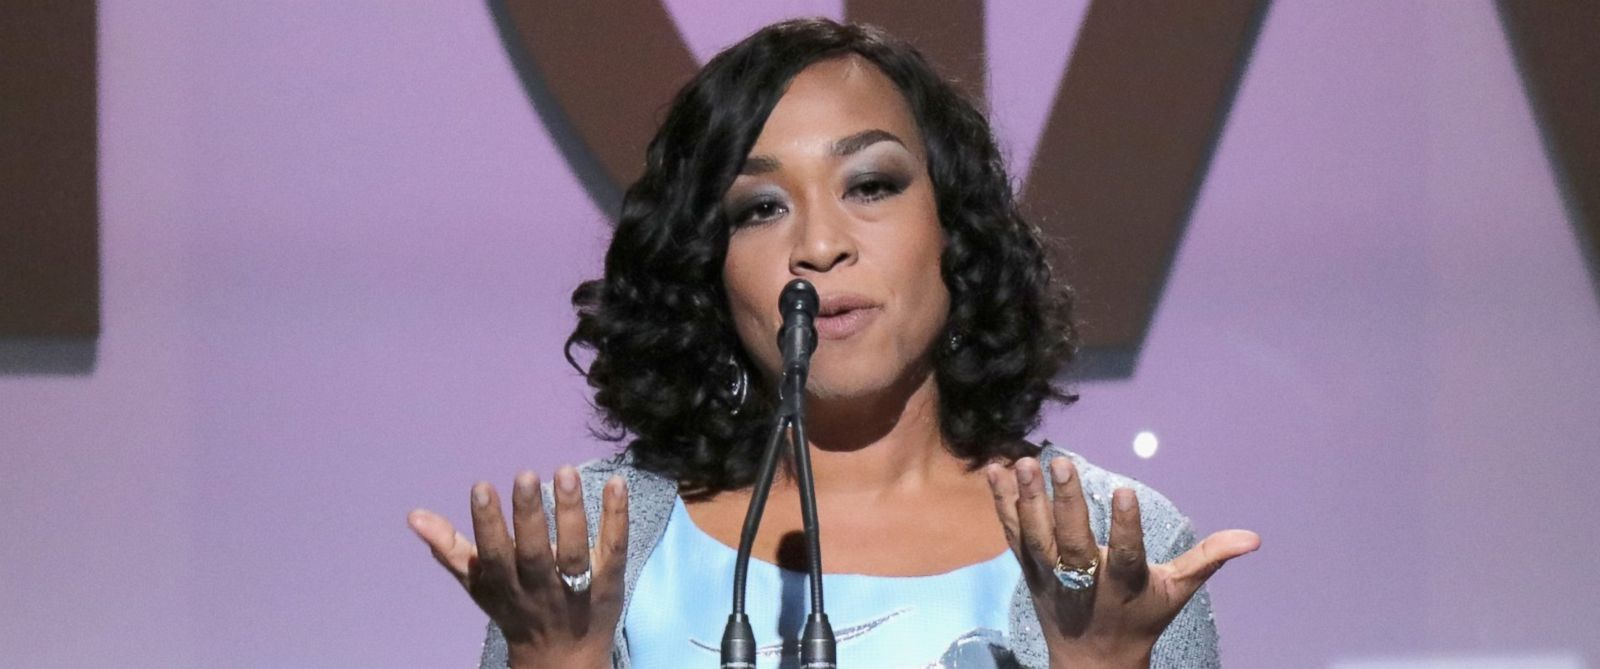 PHOTO: Shonda Rhimes accepts the Norman Lear Achievement Award onstage at the 27th Annual Producers Guild Awards at the Hyatt Regency Century Plaza, Jan. 23, 2016, in Century City, Calif.